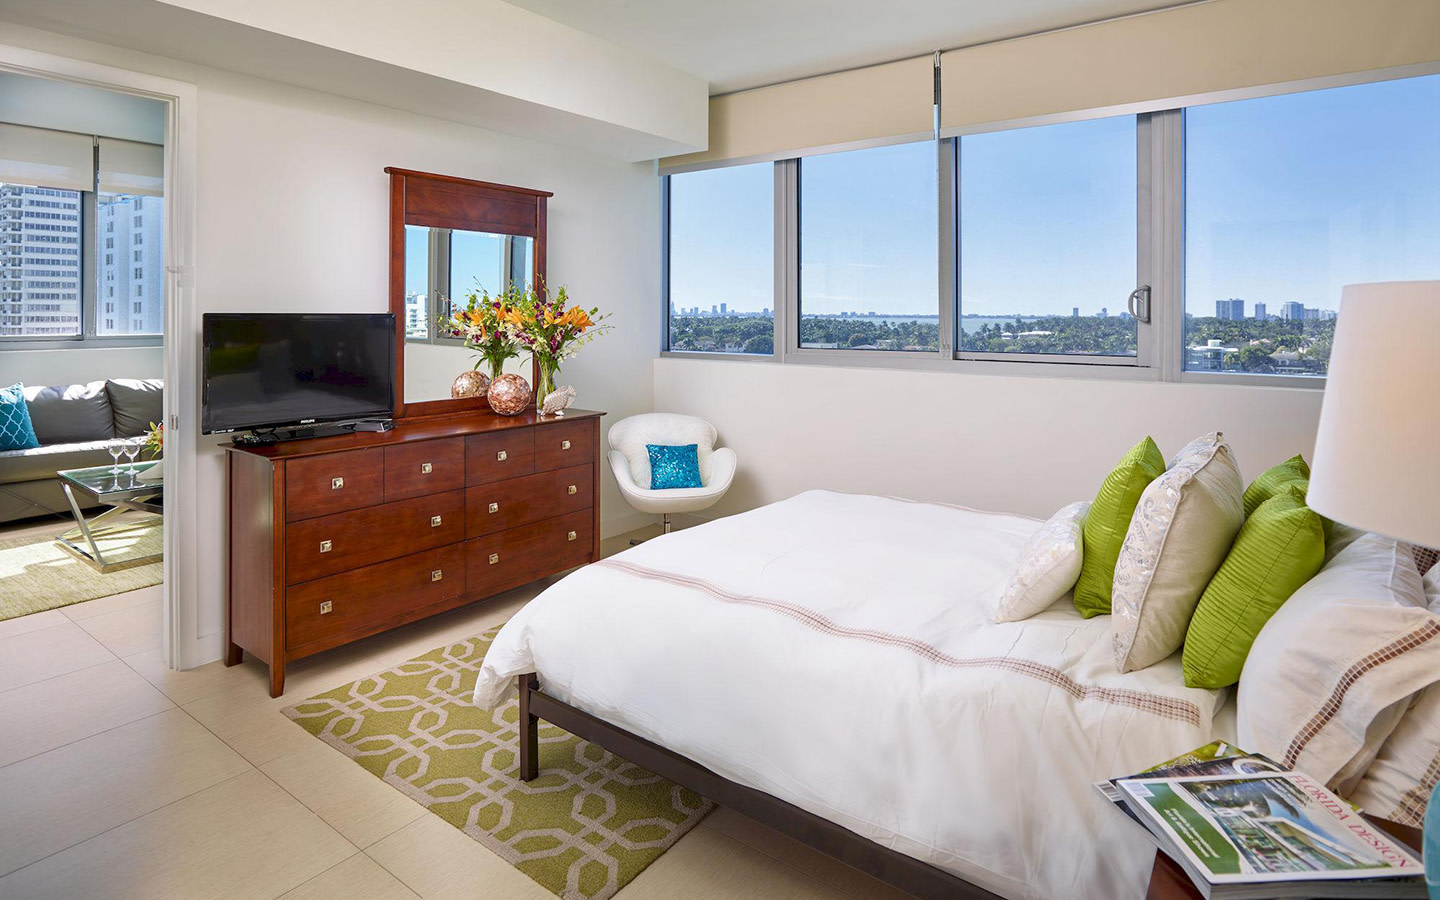 Deluxe Bay Front one-bedroom apartment suite